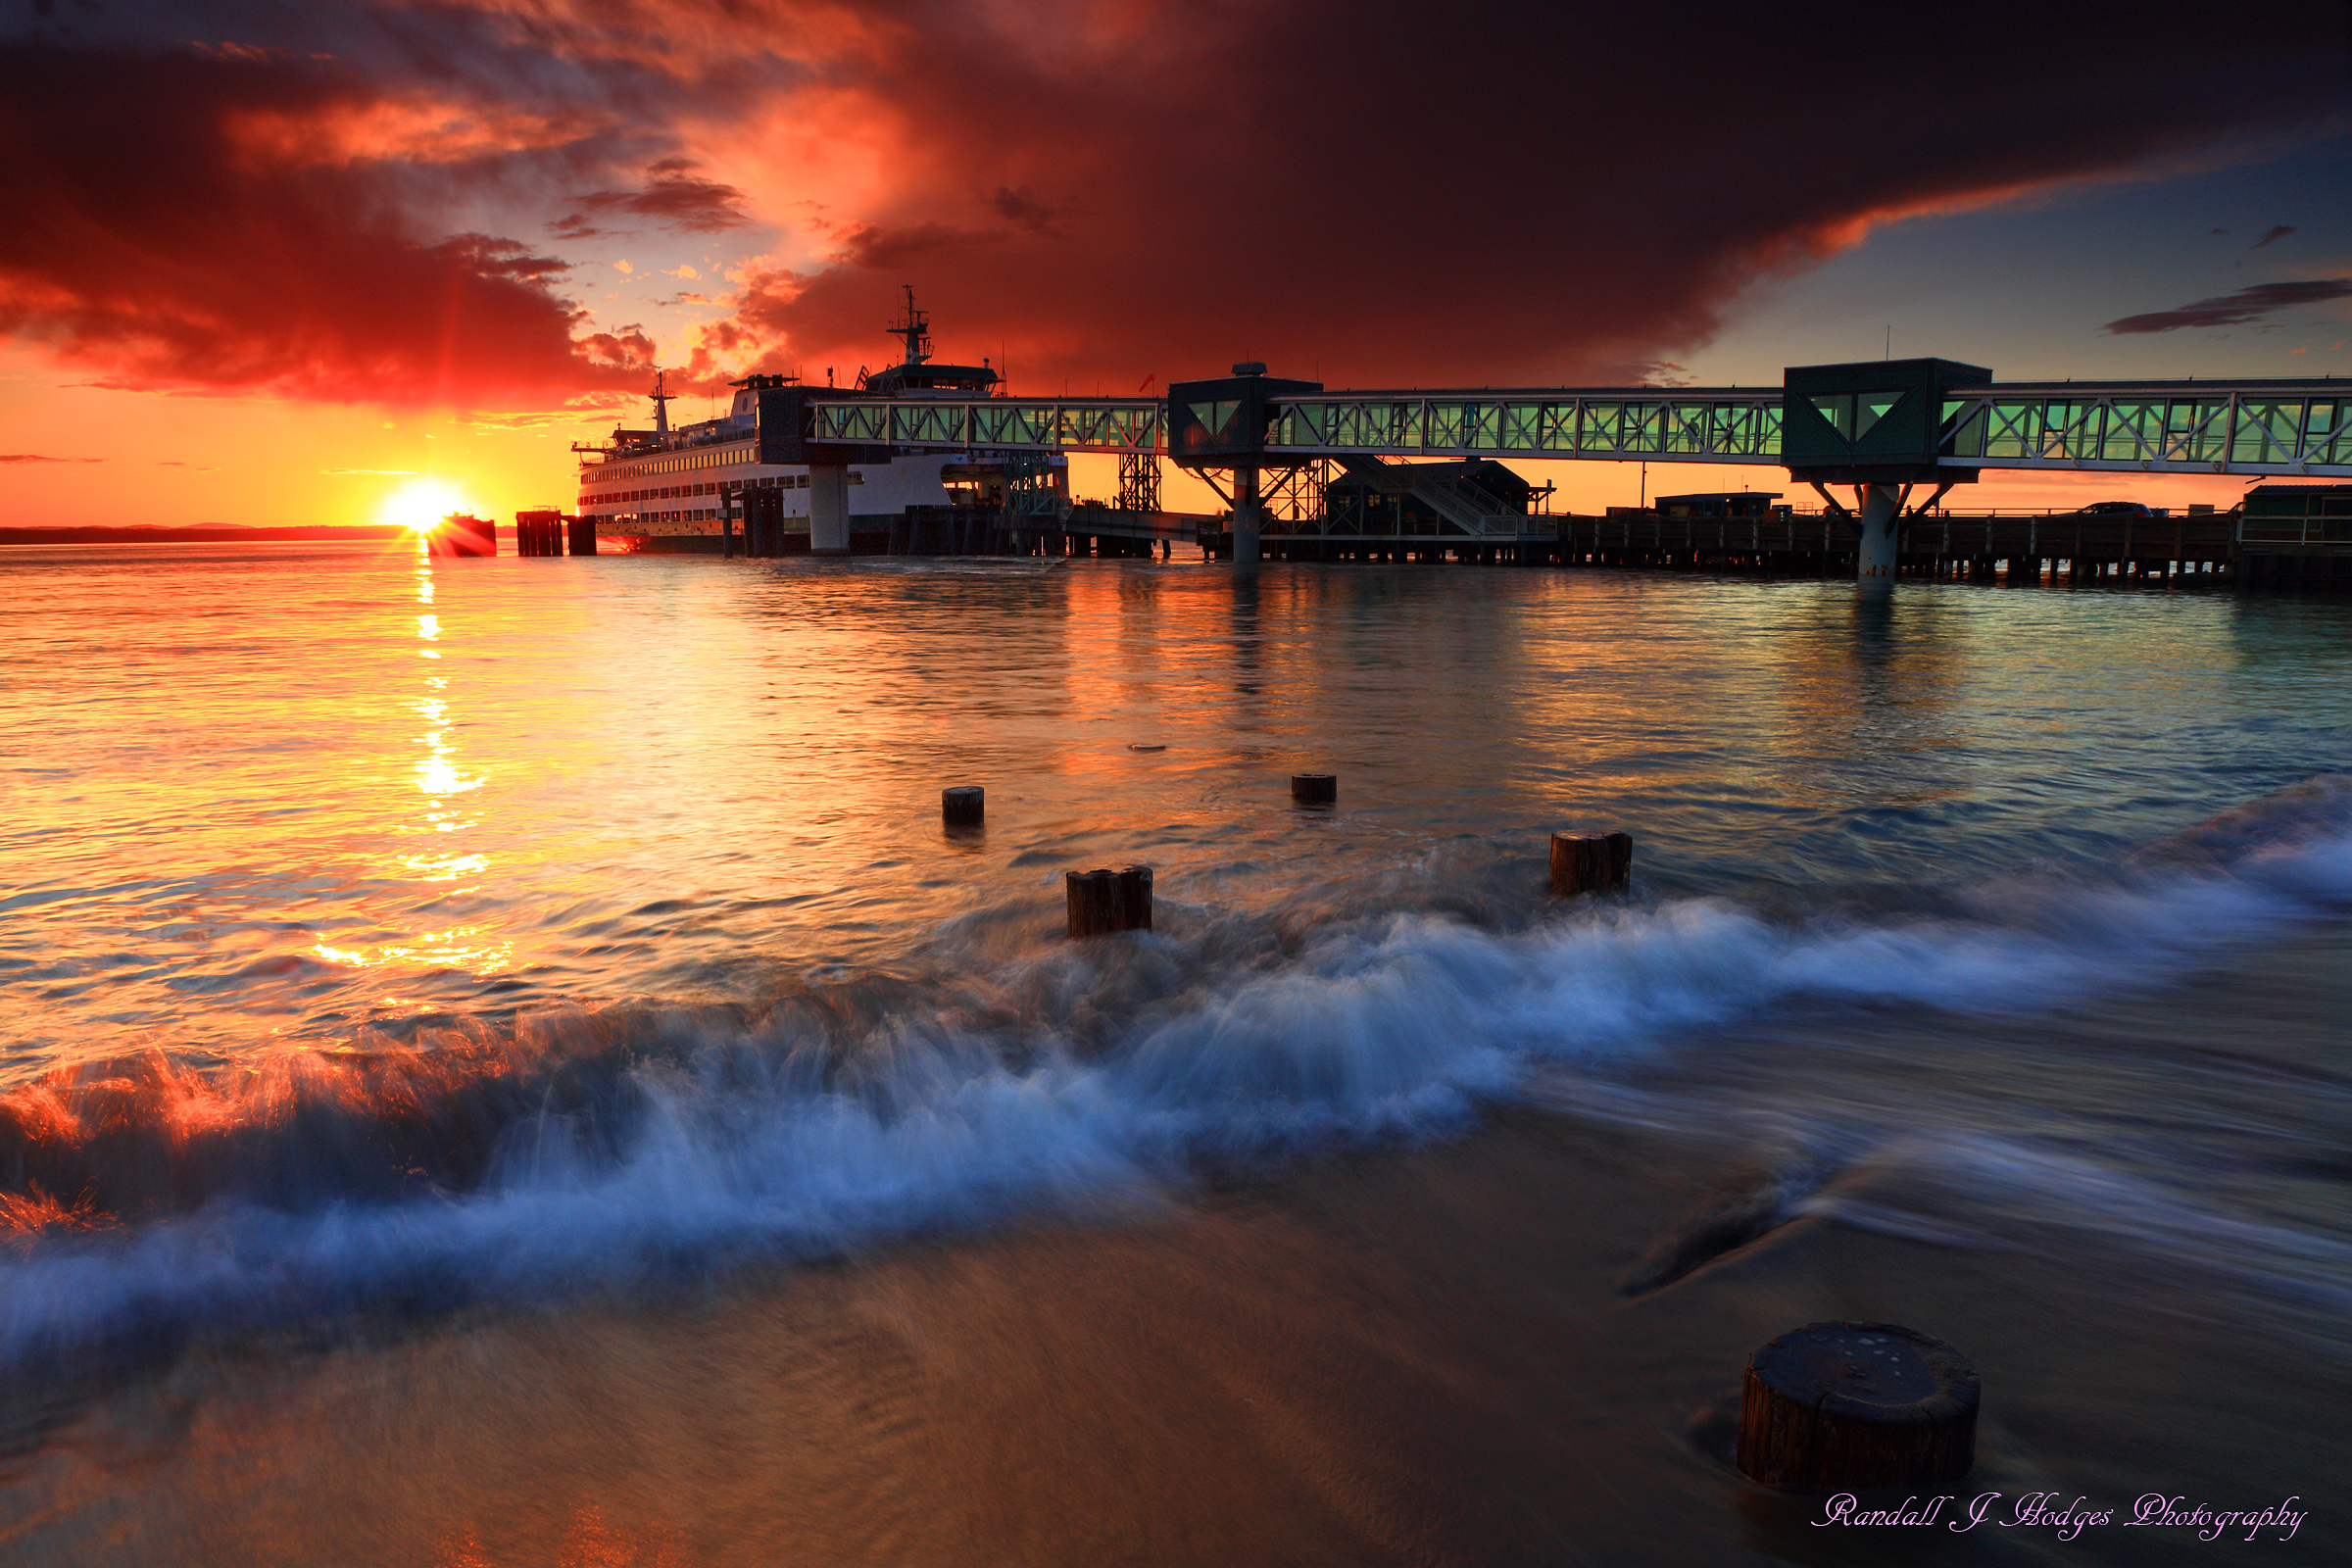 Sunset Edmonds Ferry at Dock with Wave From Brackett's Landing at Edmonds Beach in Edmonds Washington